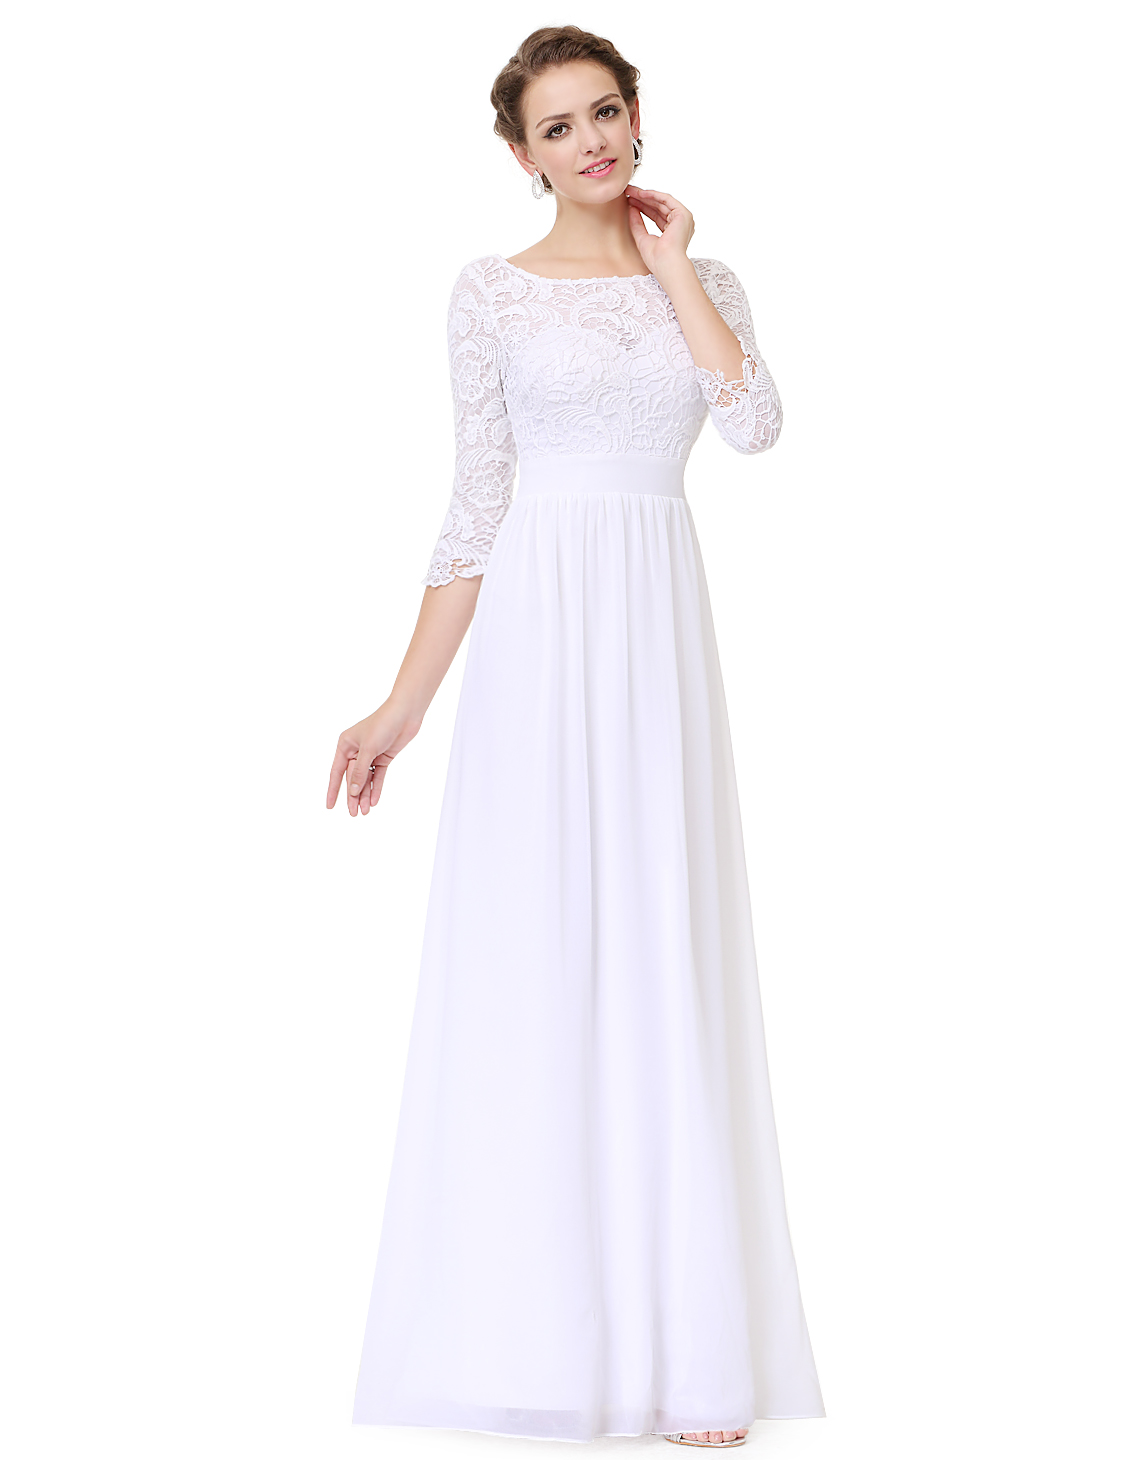 Womens 34 sleeves lace bridesmaid dresses evening prom gown 08412 womens 3 4 sleeves lace bridesmaid dresses evening ombrellifo Gallery